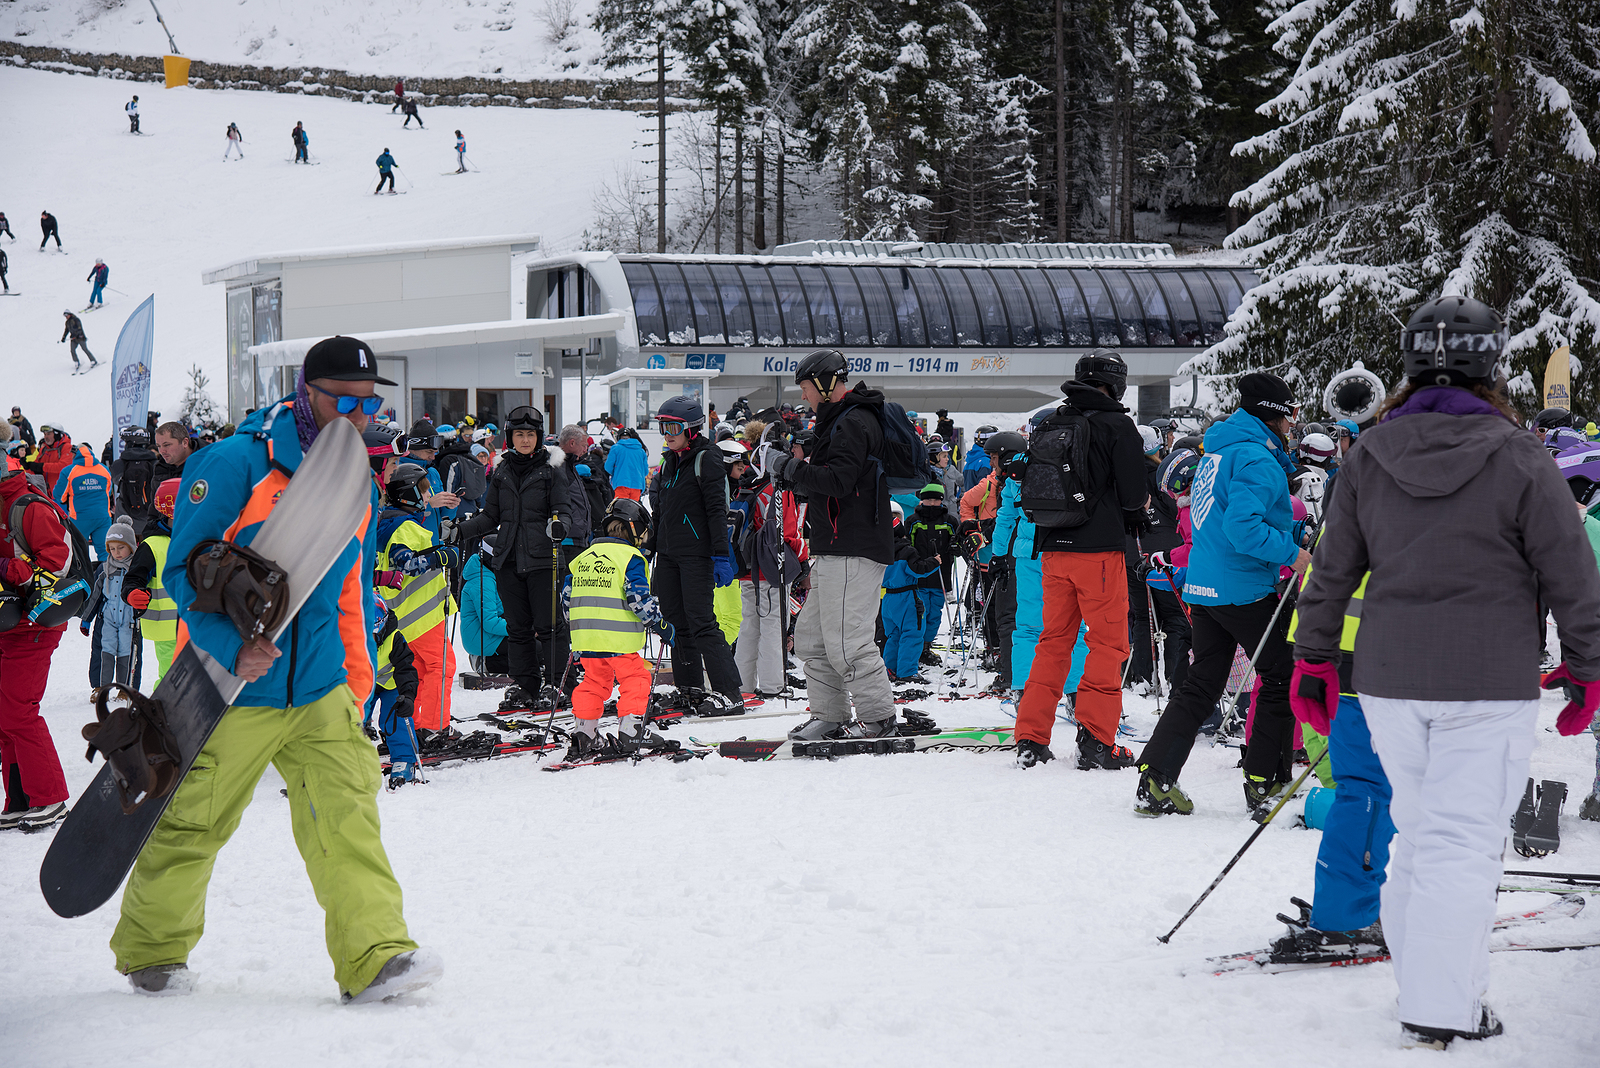 Crowds as Bansko, a Bulgarian ski resort